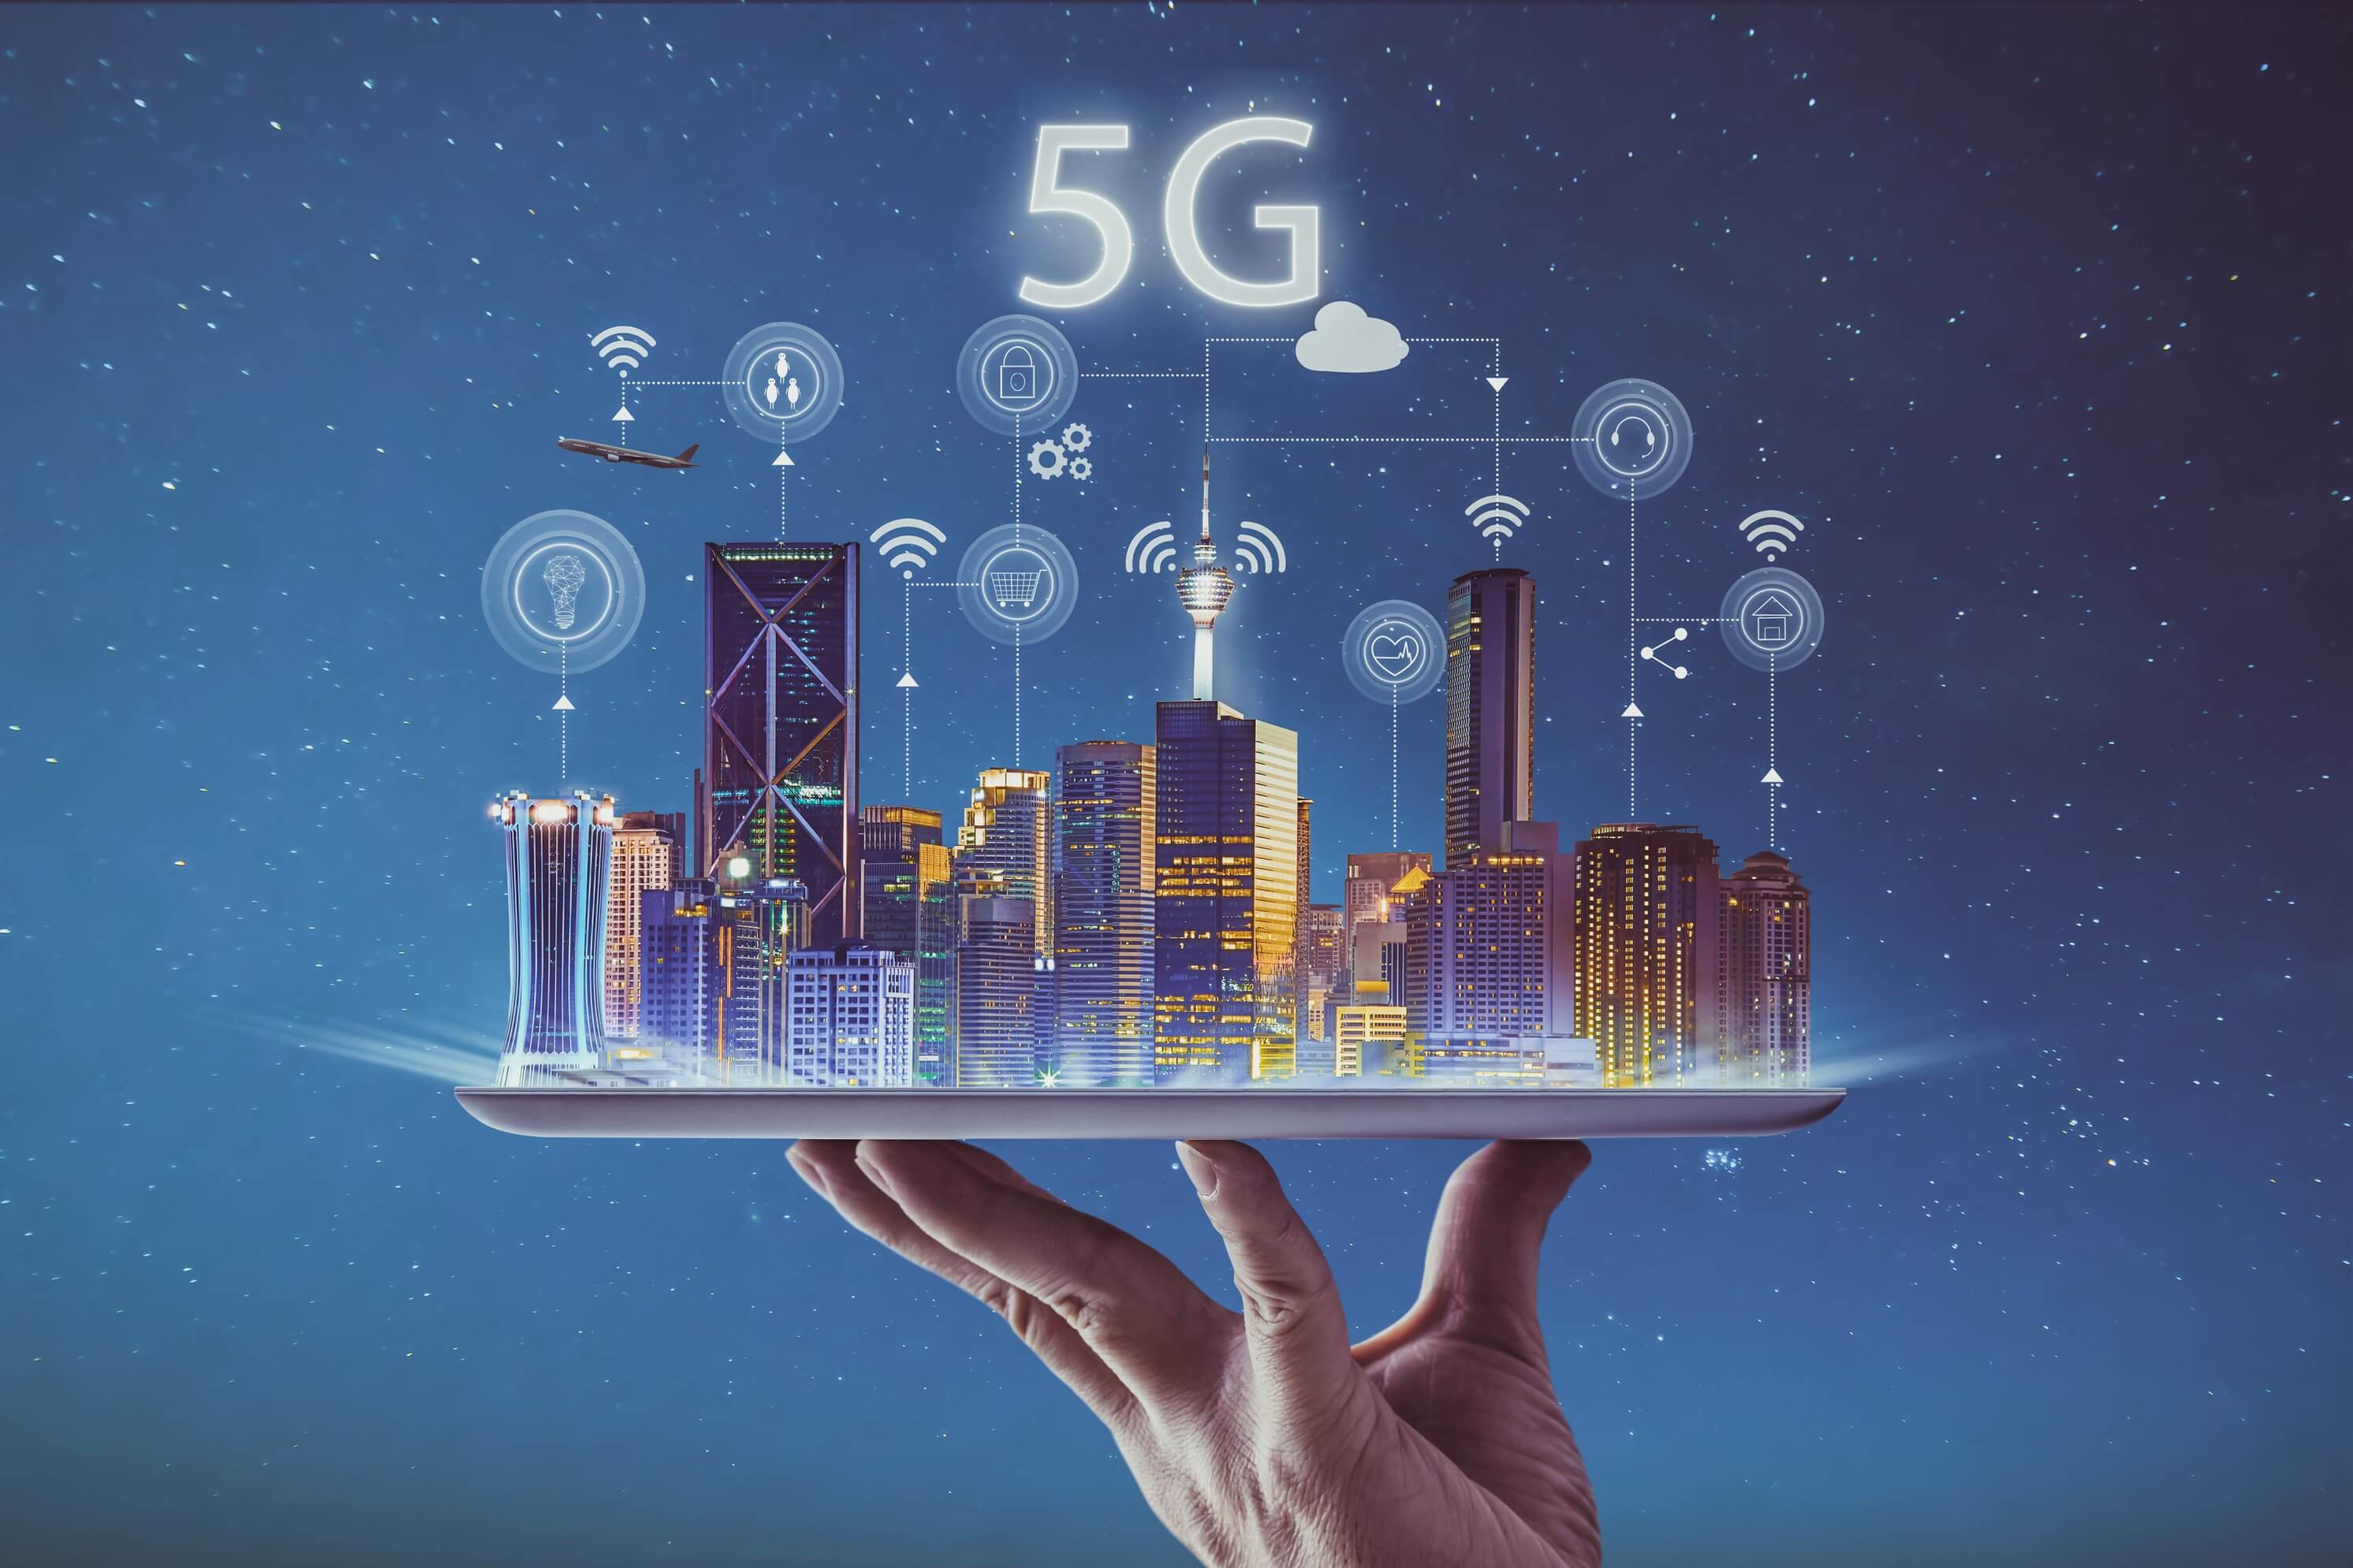 The State of 5G: When It's Coming, How Fast It Will Be & The Sci-Fi Future It Will Enable